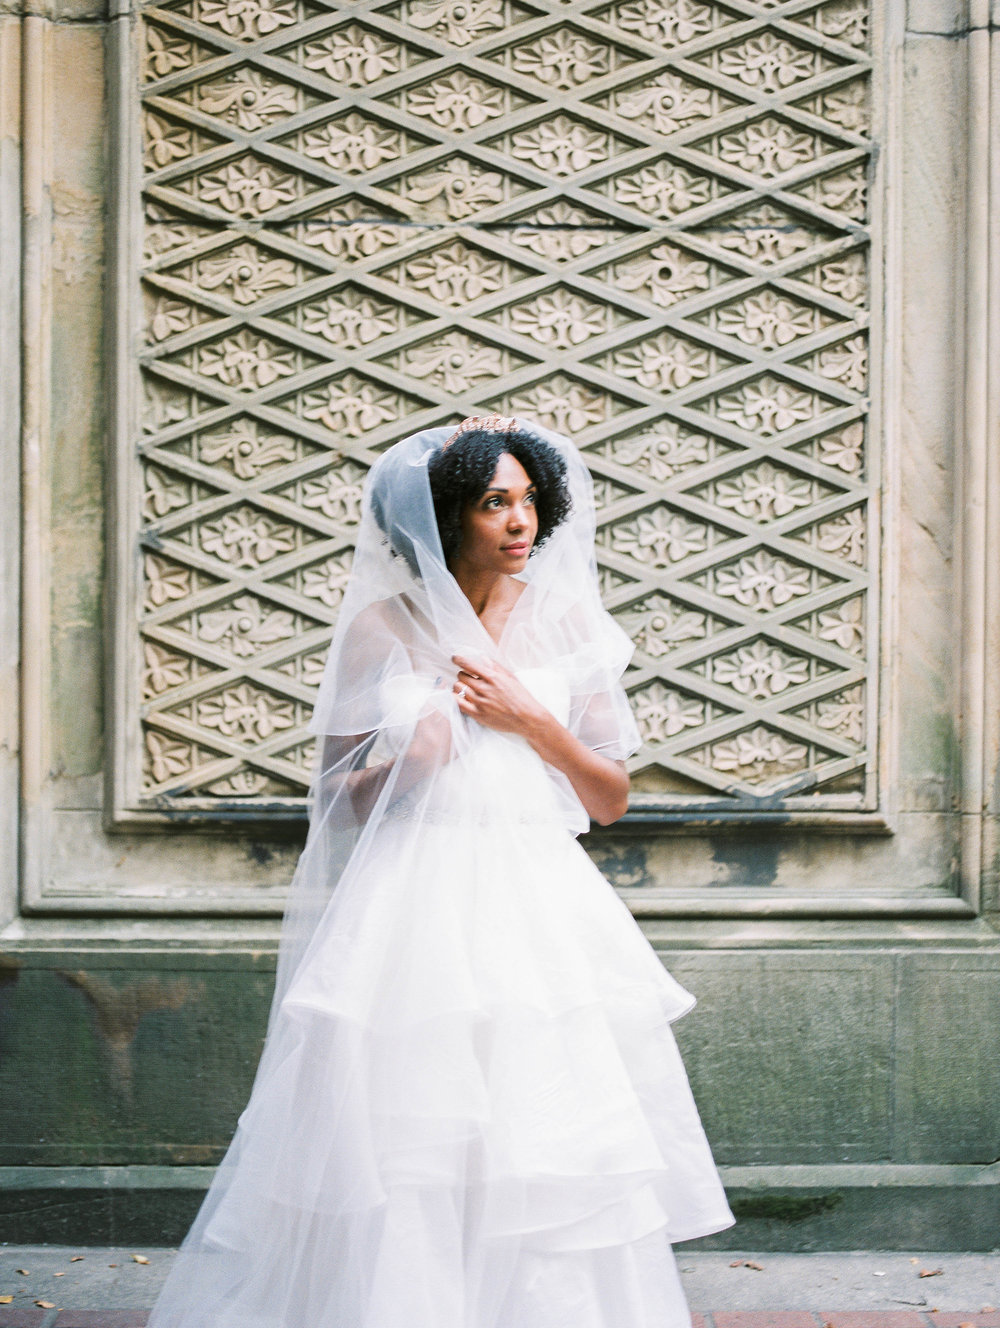 NYC Bride - www.jleephotos.com